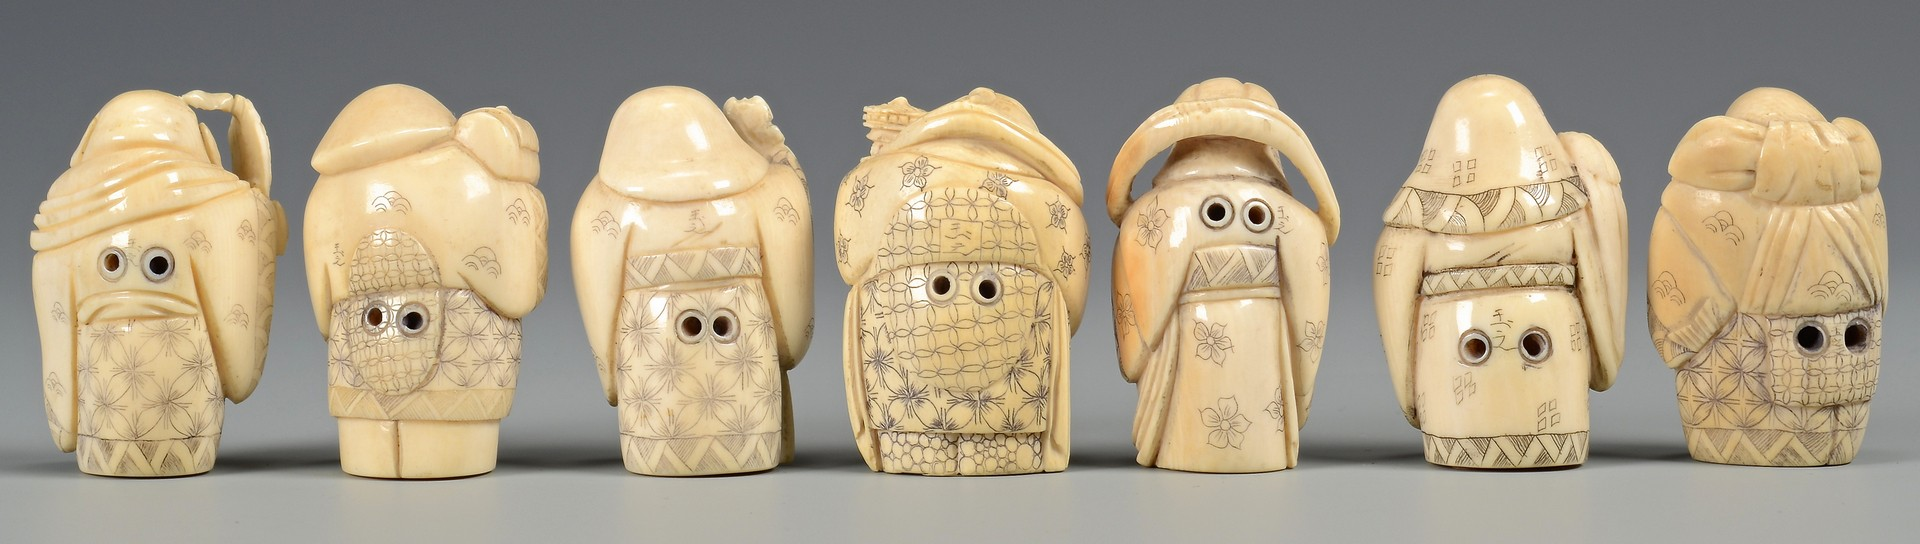 Lot 373: 7 Ivory Immortals & Lacquer Fruit